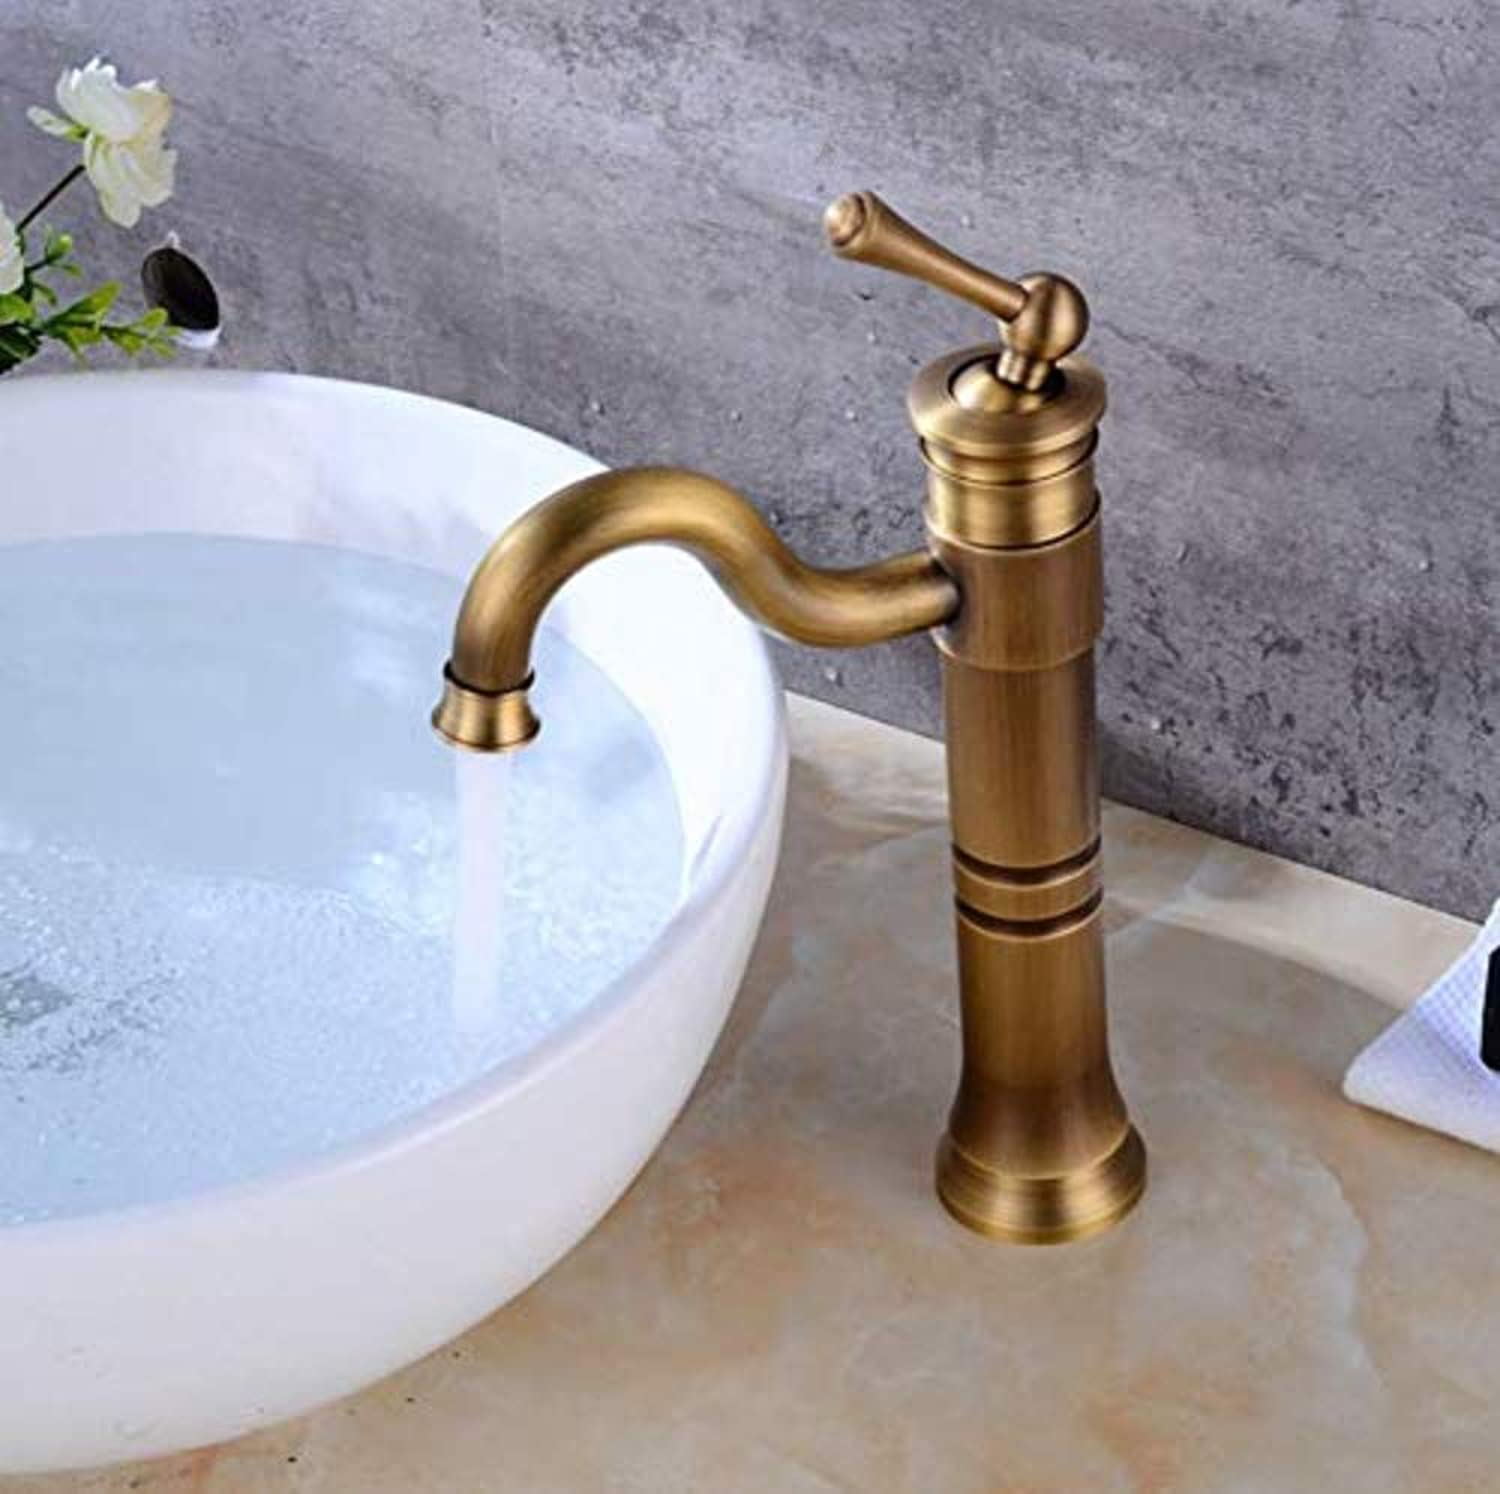 Bathroom Sink Tap Single Handle Control Faucet Bathroom Basin Mixer Tap Antique Sink Basin Tap Bathroom Sink Faucets